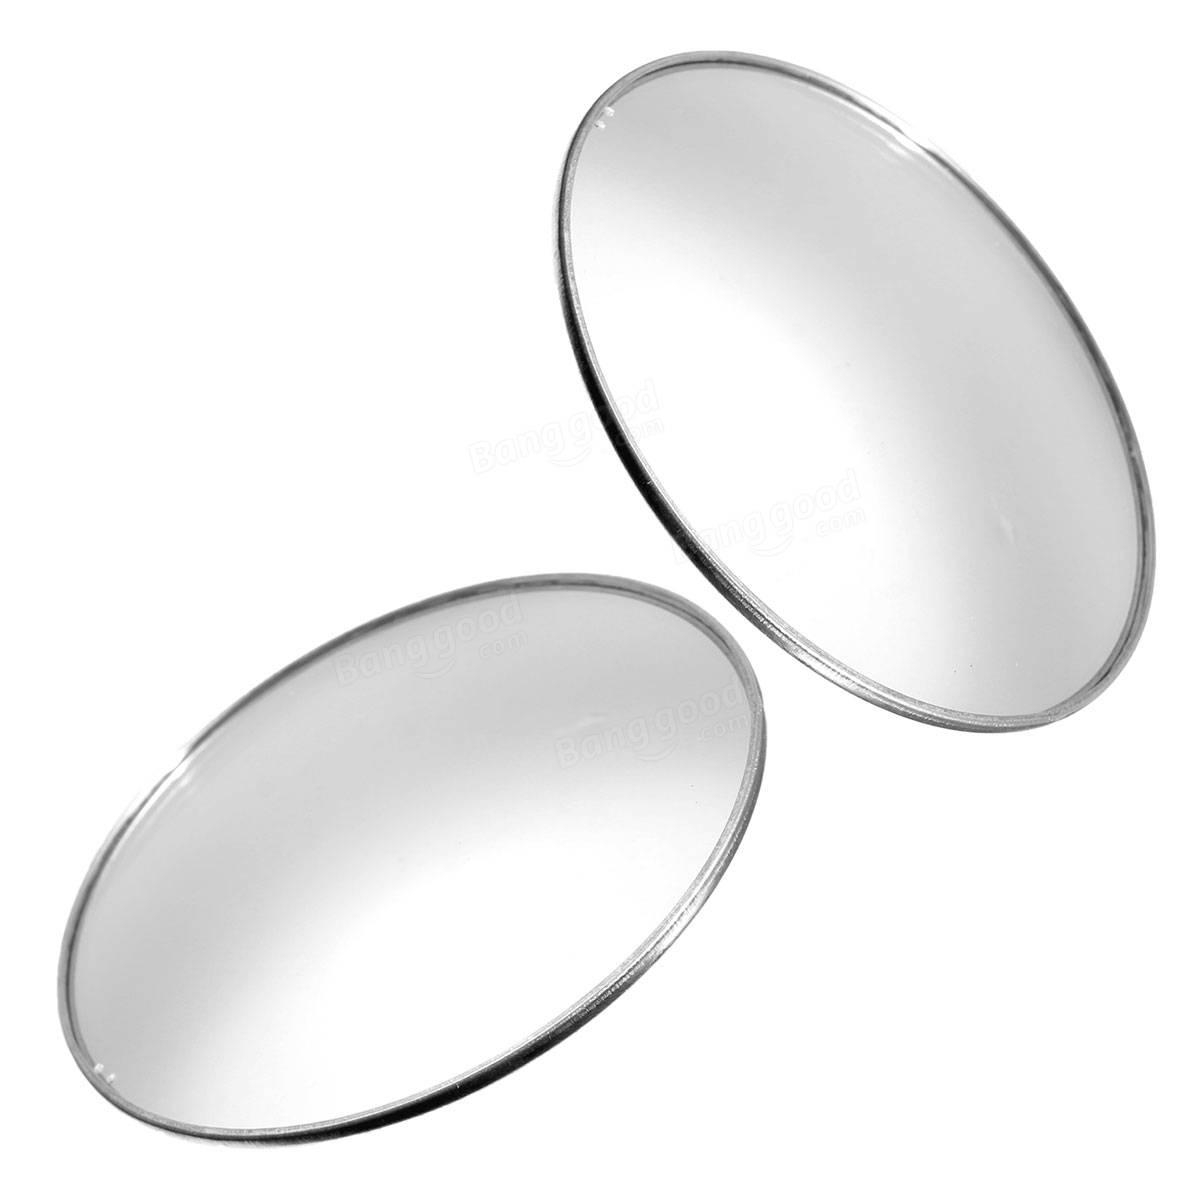 3 Inch Car Blind Spot Rear View Mirrors Wide Angle Round Convex With Round Convex Mirror (Image 1 of 20)